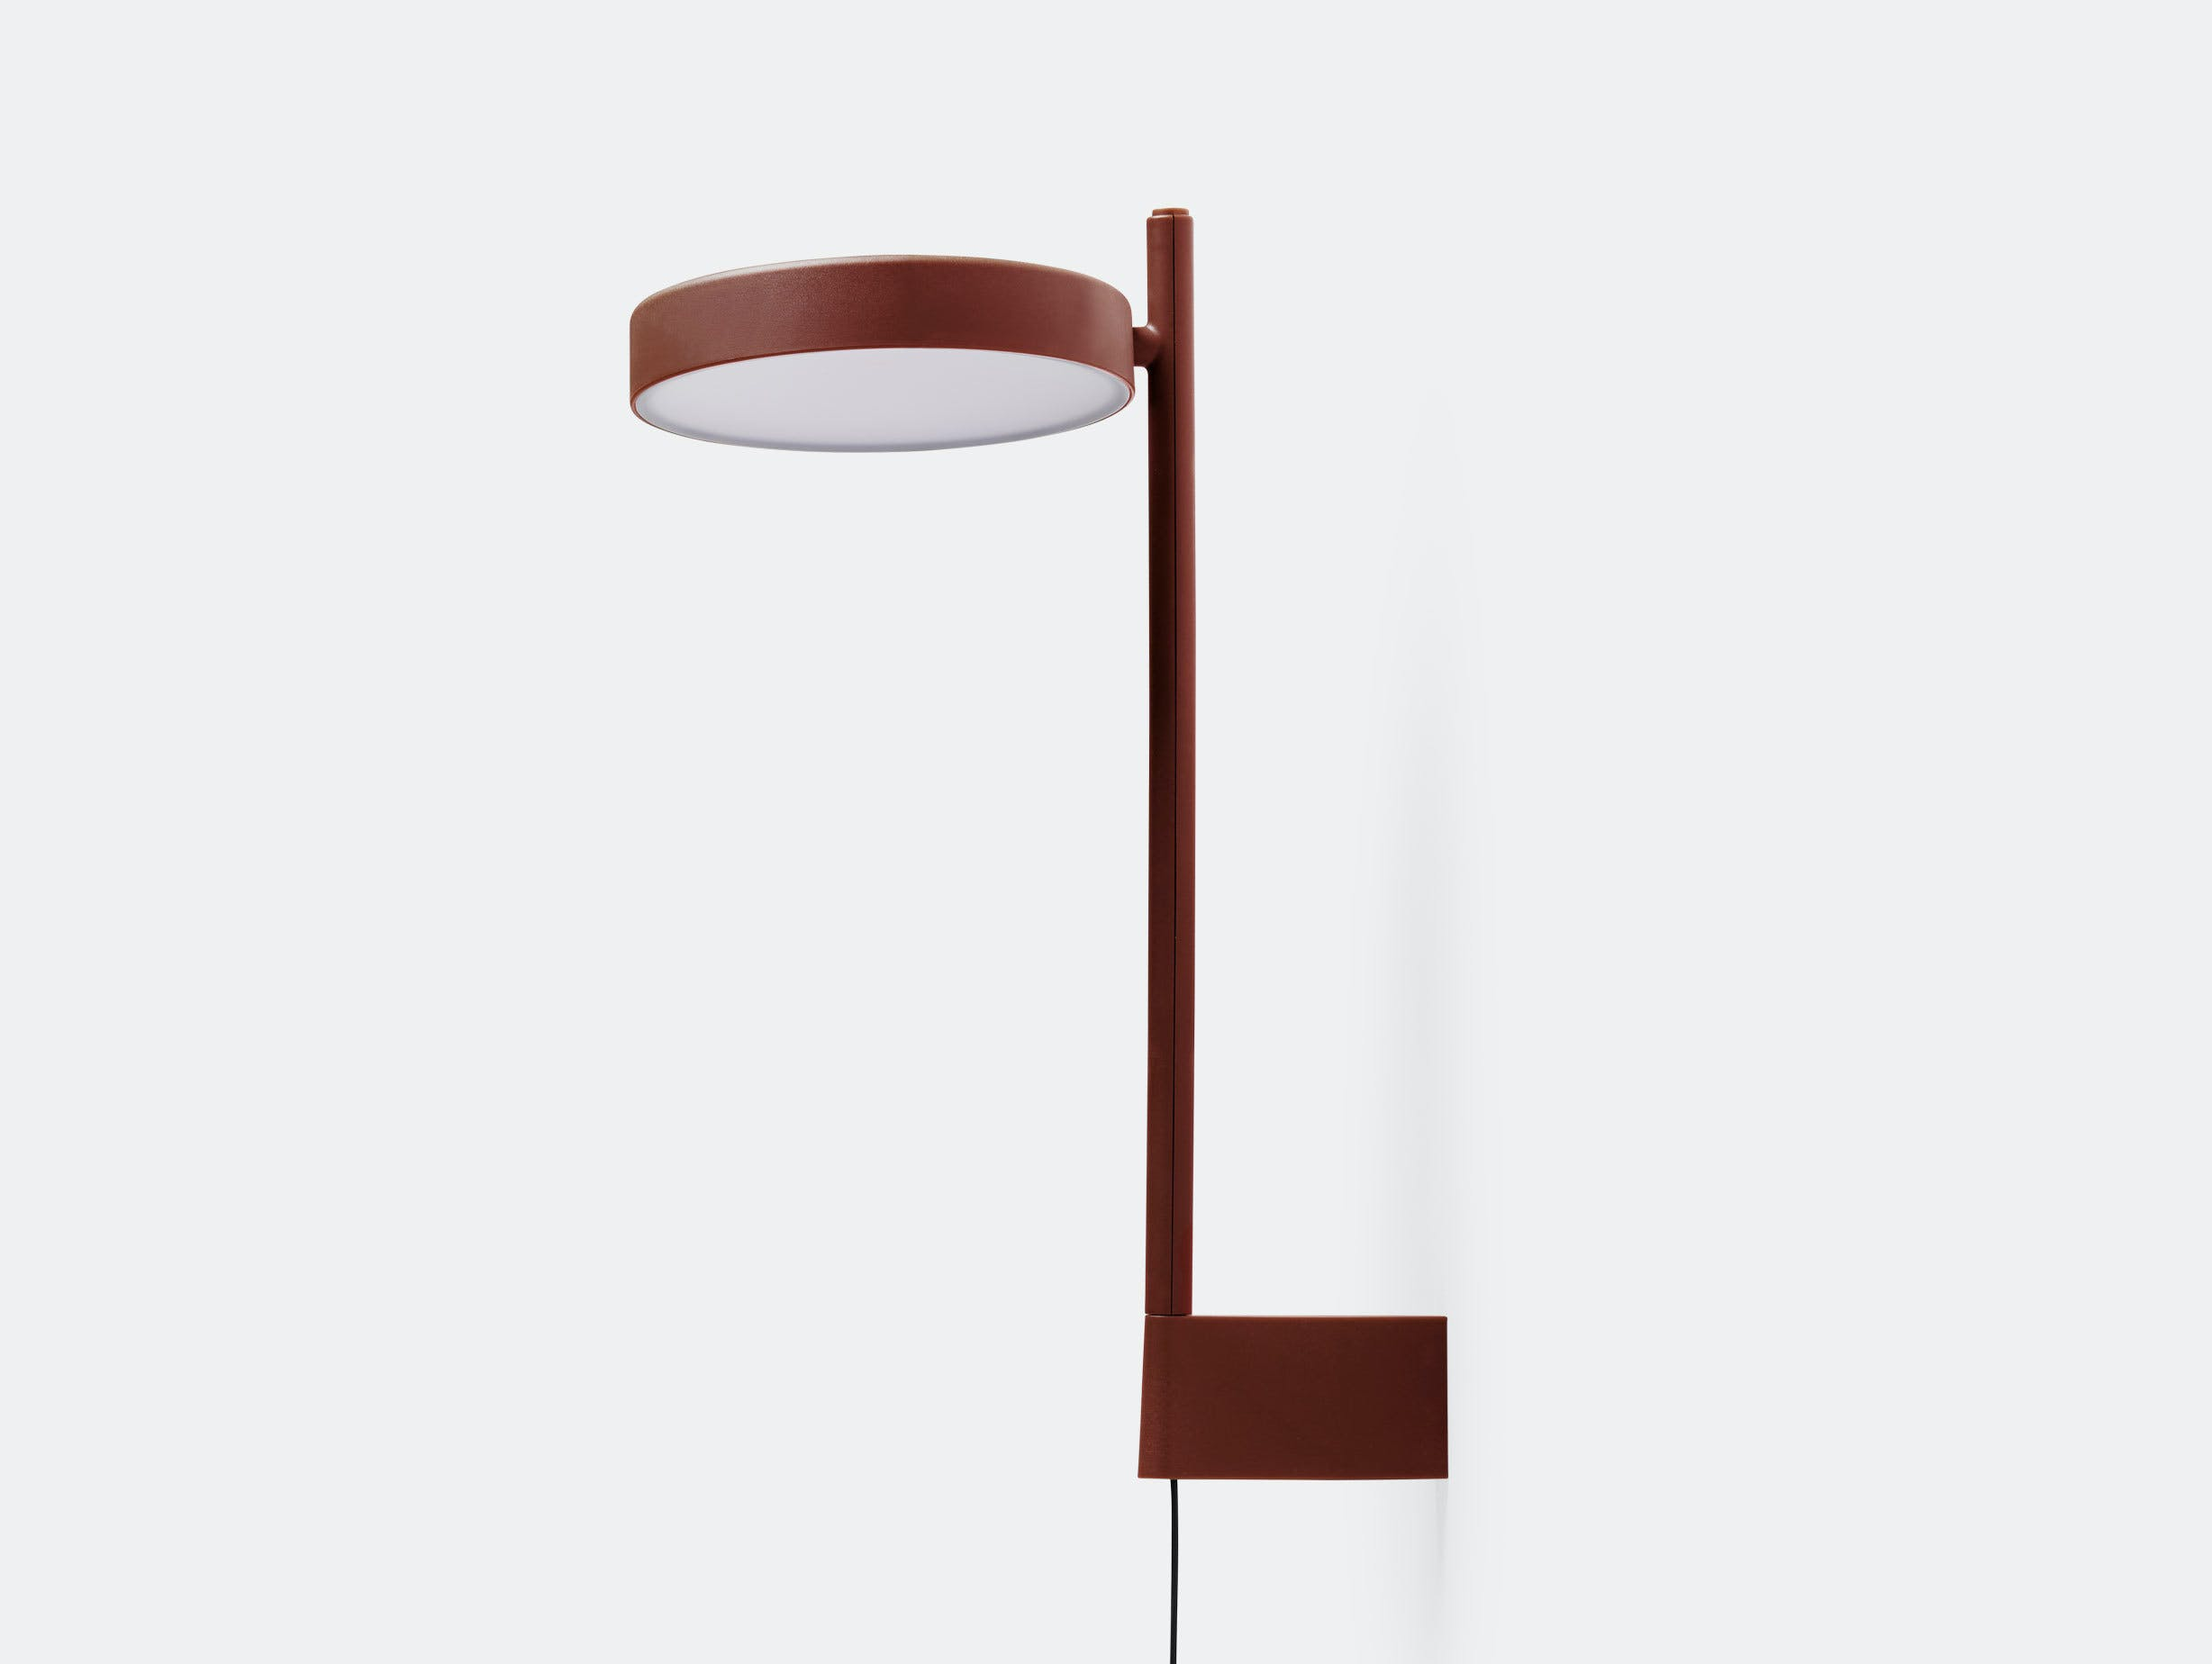 Wastberg W182 Pastille Wall Lamp Tall Red Sam Hecht Kim Colin